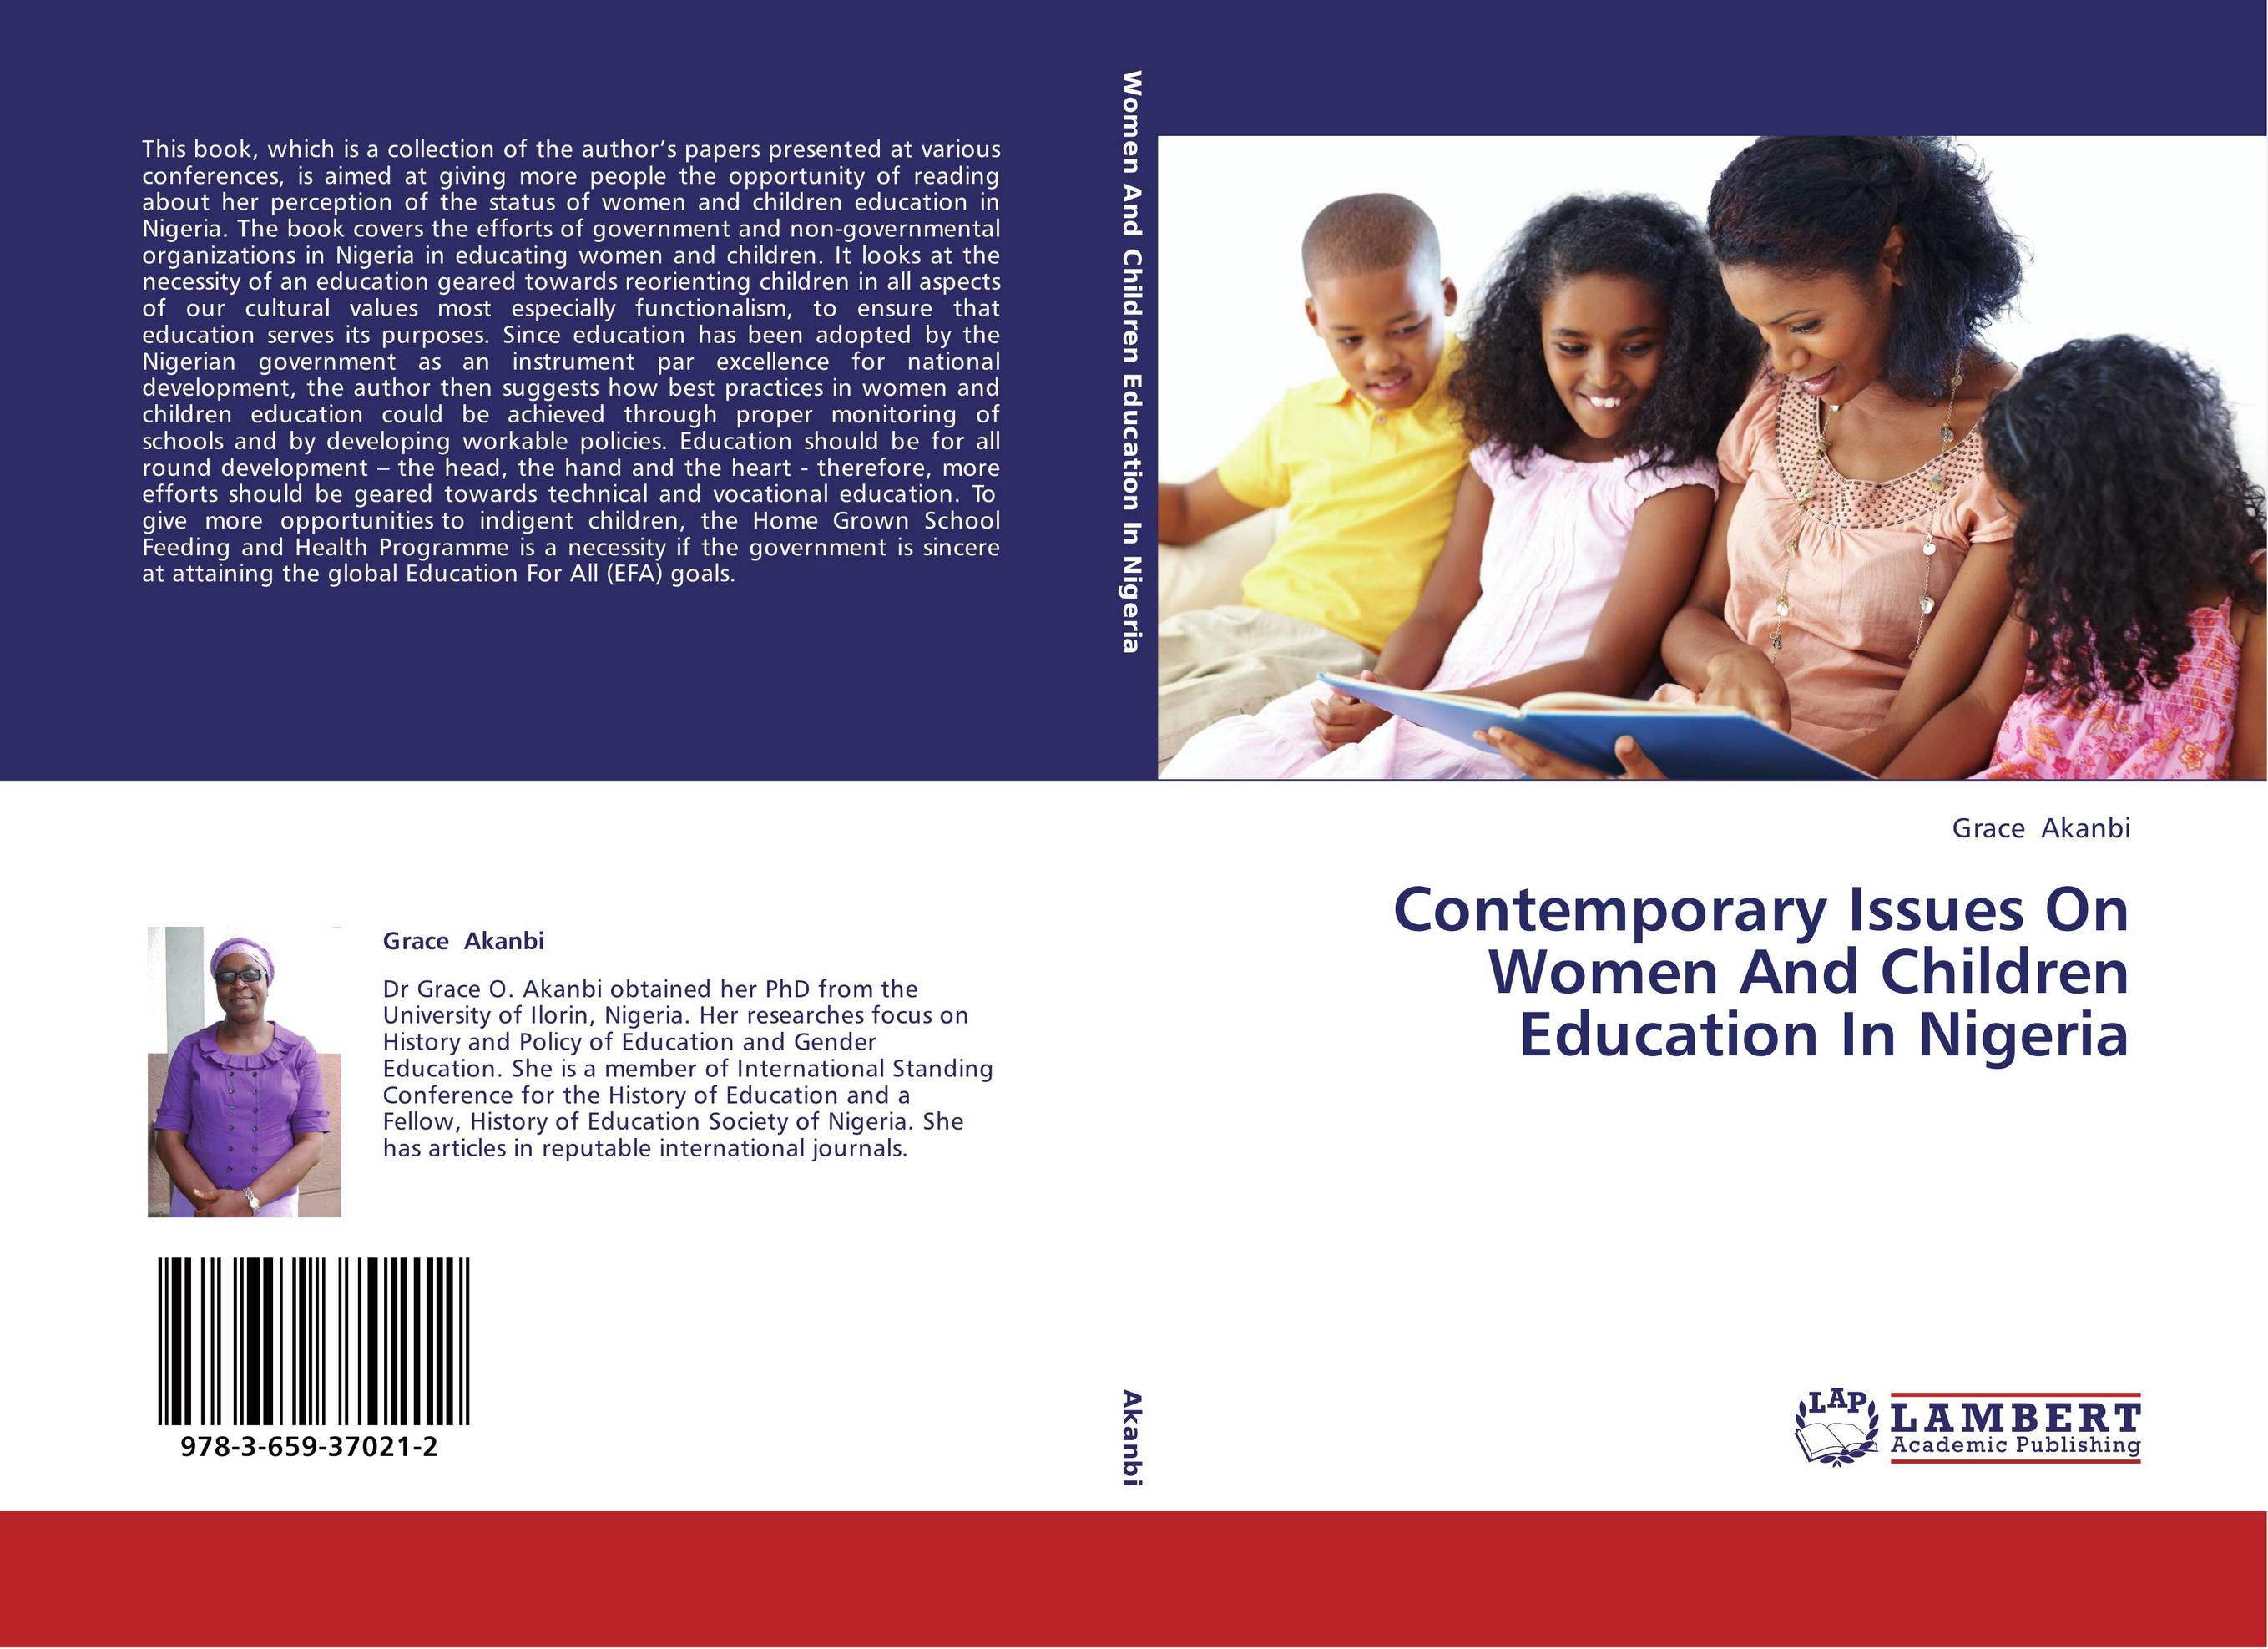 contemporary issues of education Education reform movement, but students from the communities represented in this book deserve each of: good public policy on education, good public policy on poverty (along with each of the other social justice.